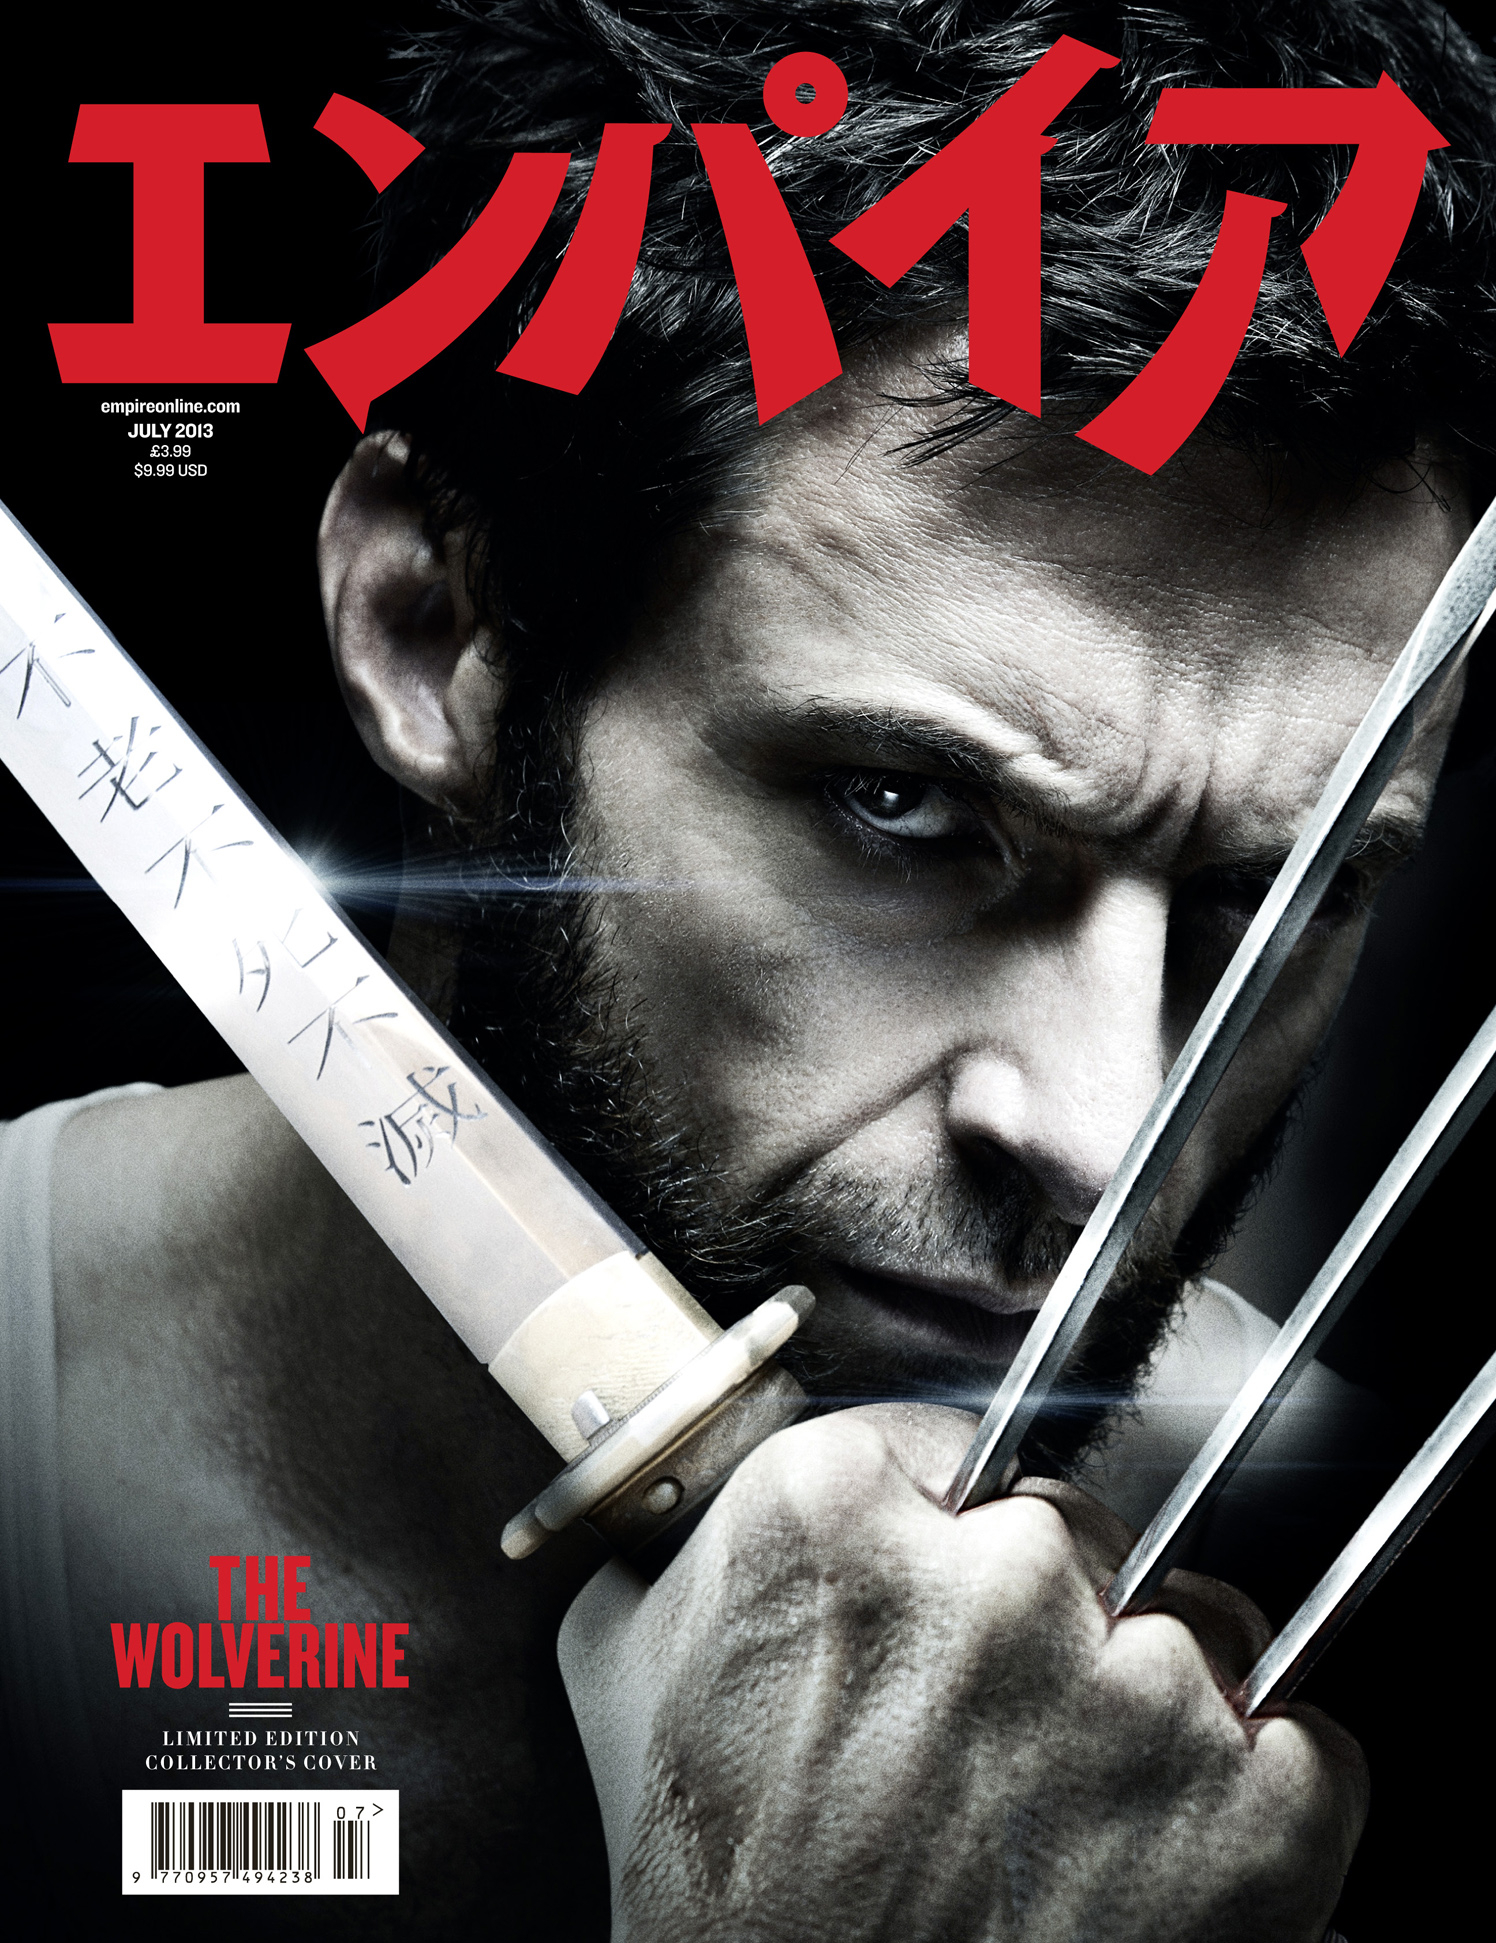 The Wolverine / Empire Magazine